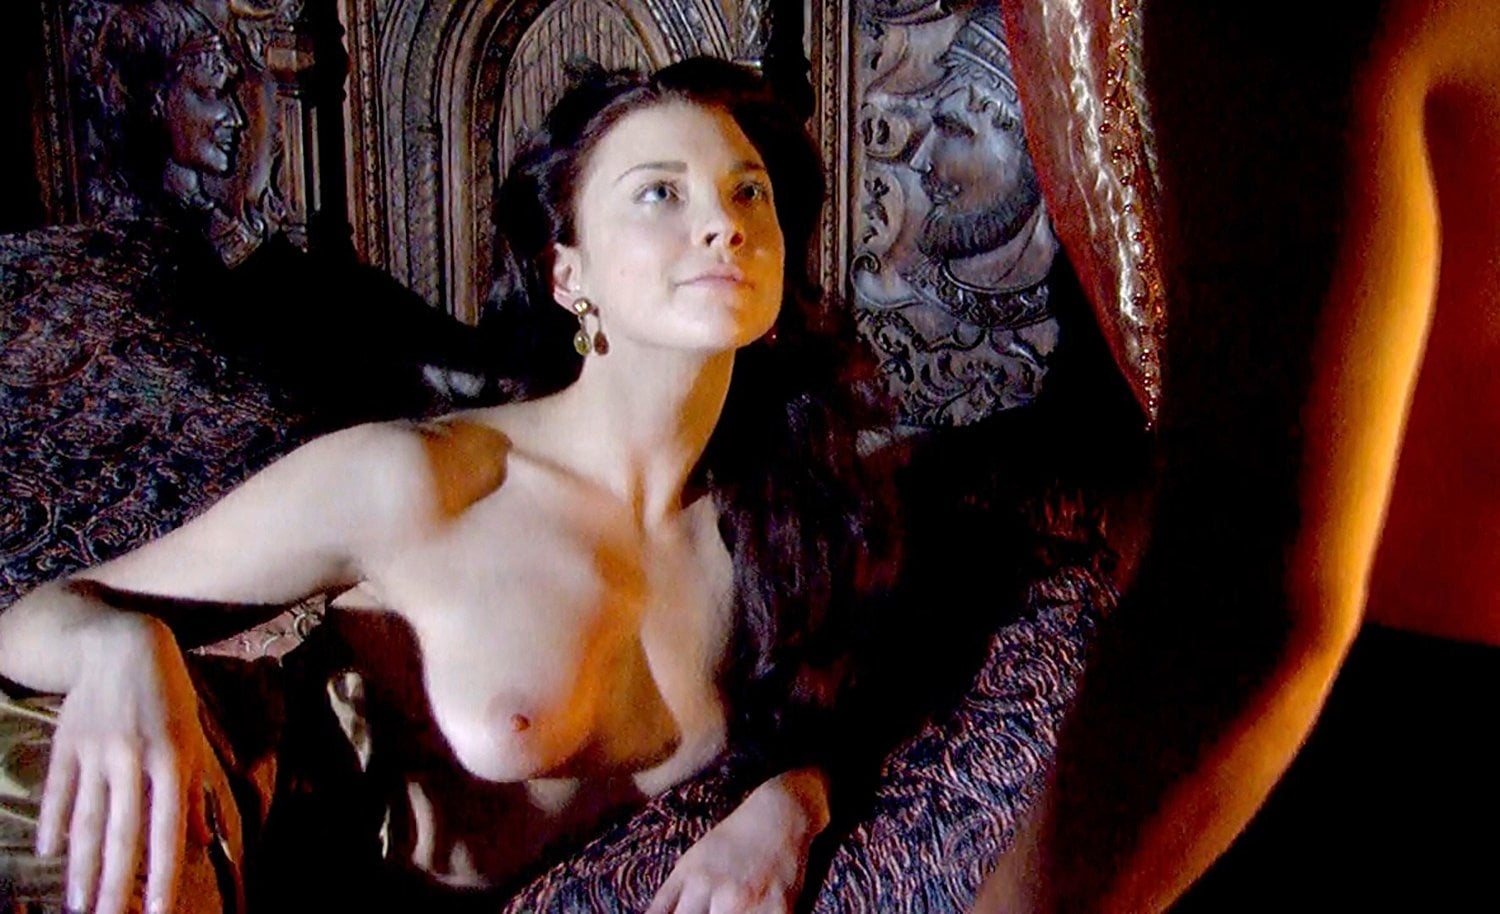 Natalie dormer nude boobs tudors series new foto